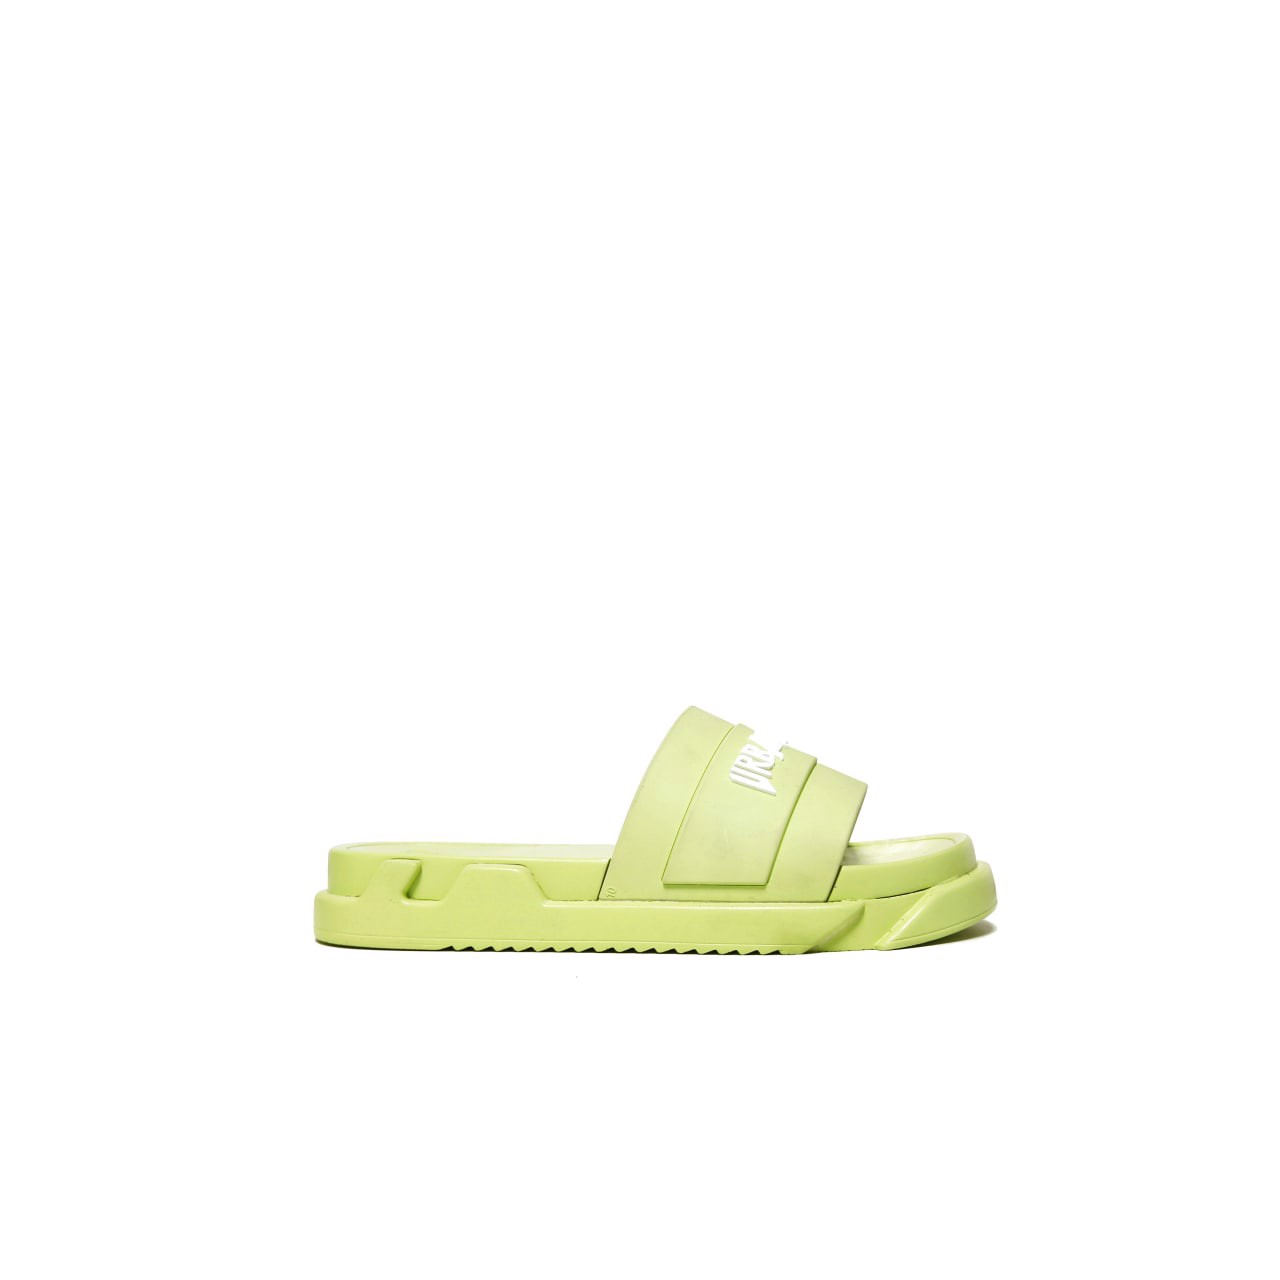 U SLIPPER 2.5 MATCHA